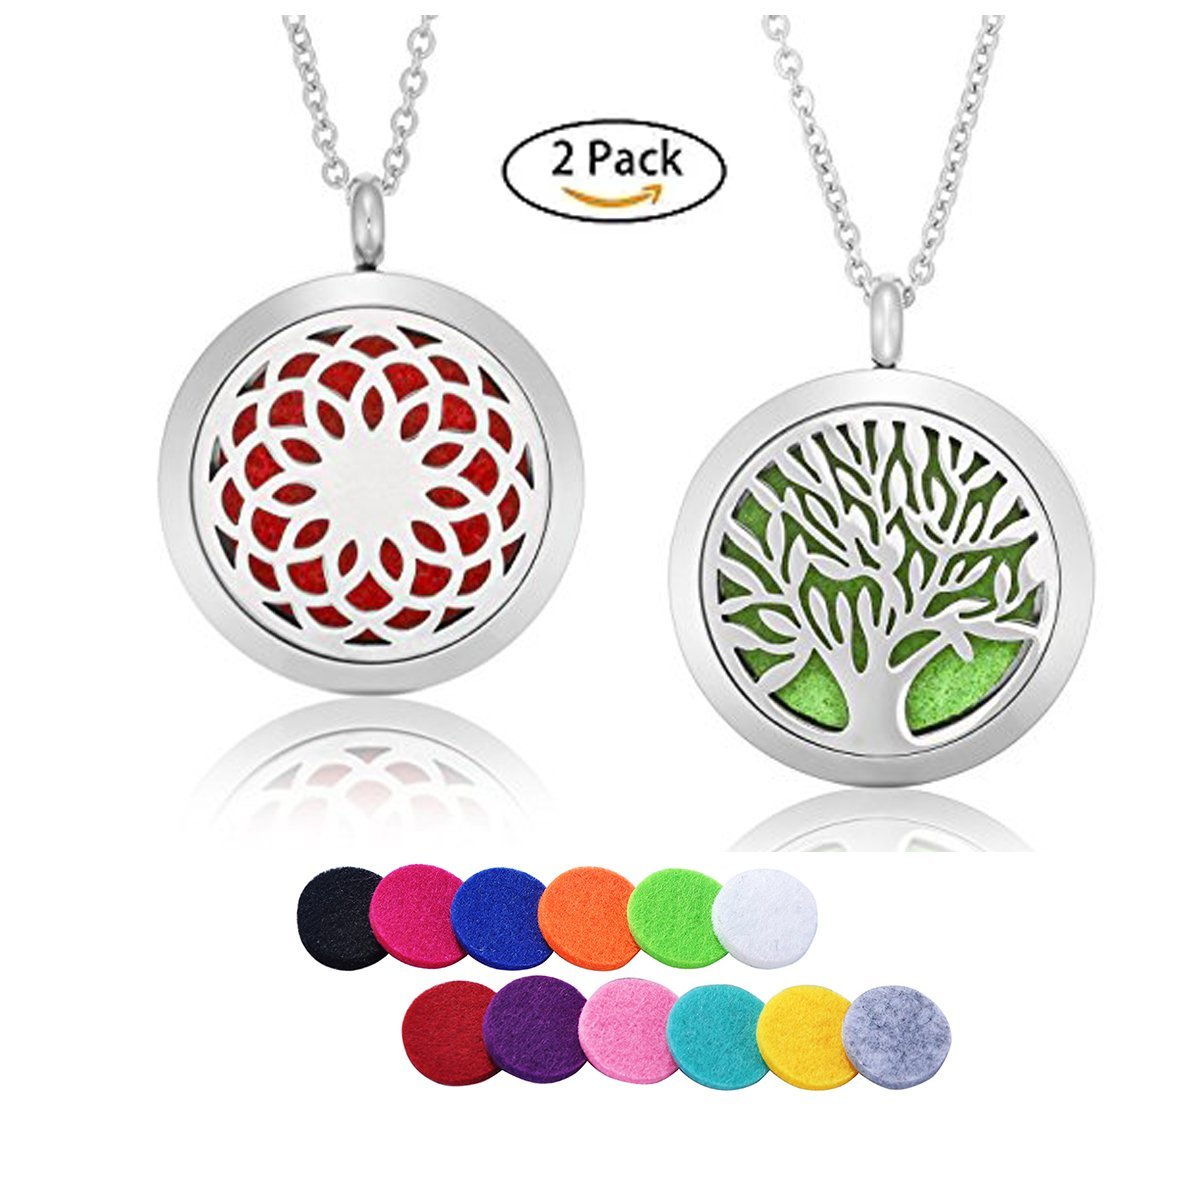 HooAMI Aromatherapy Essential Oil Diffuser Necklace Sunflower Tree of Life Locket Pendant 2pcs